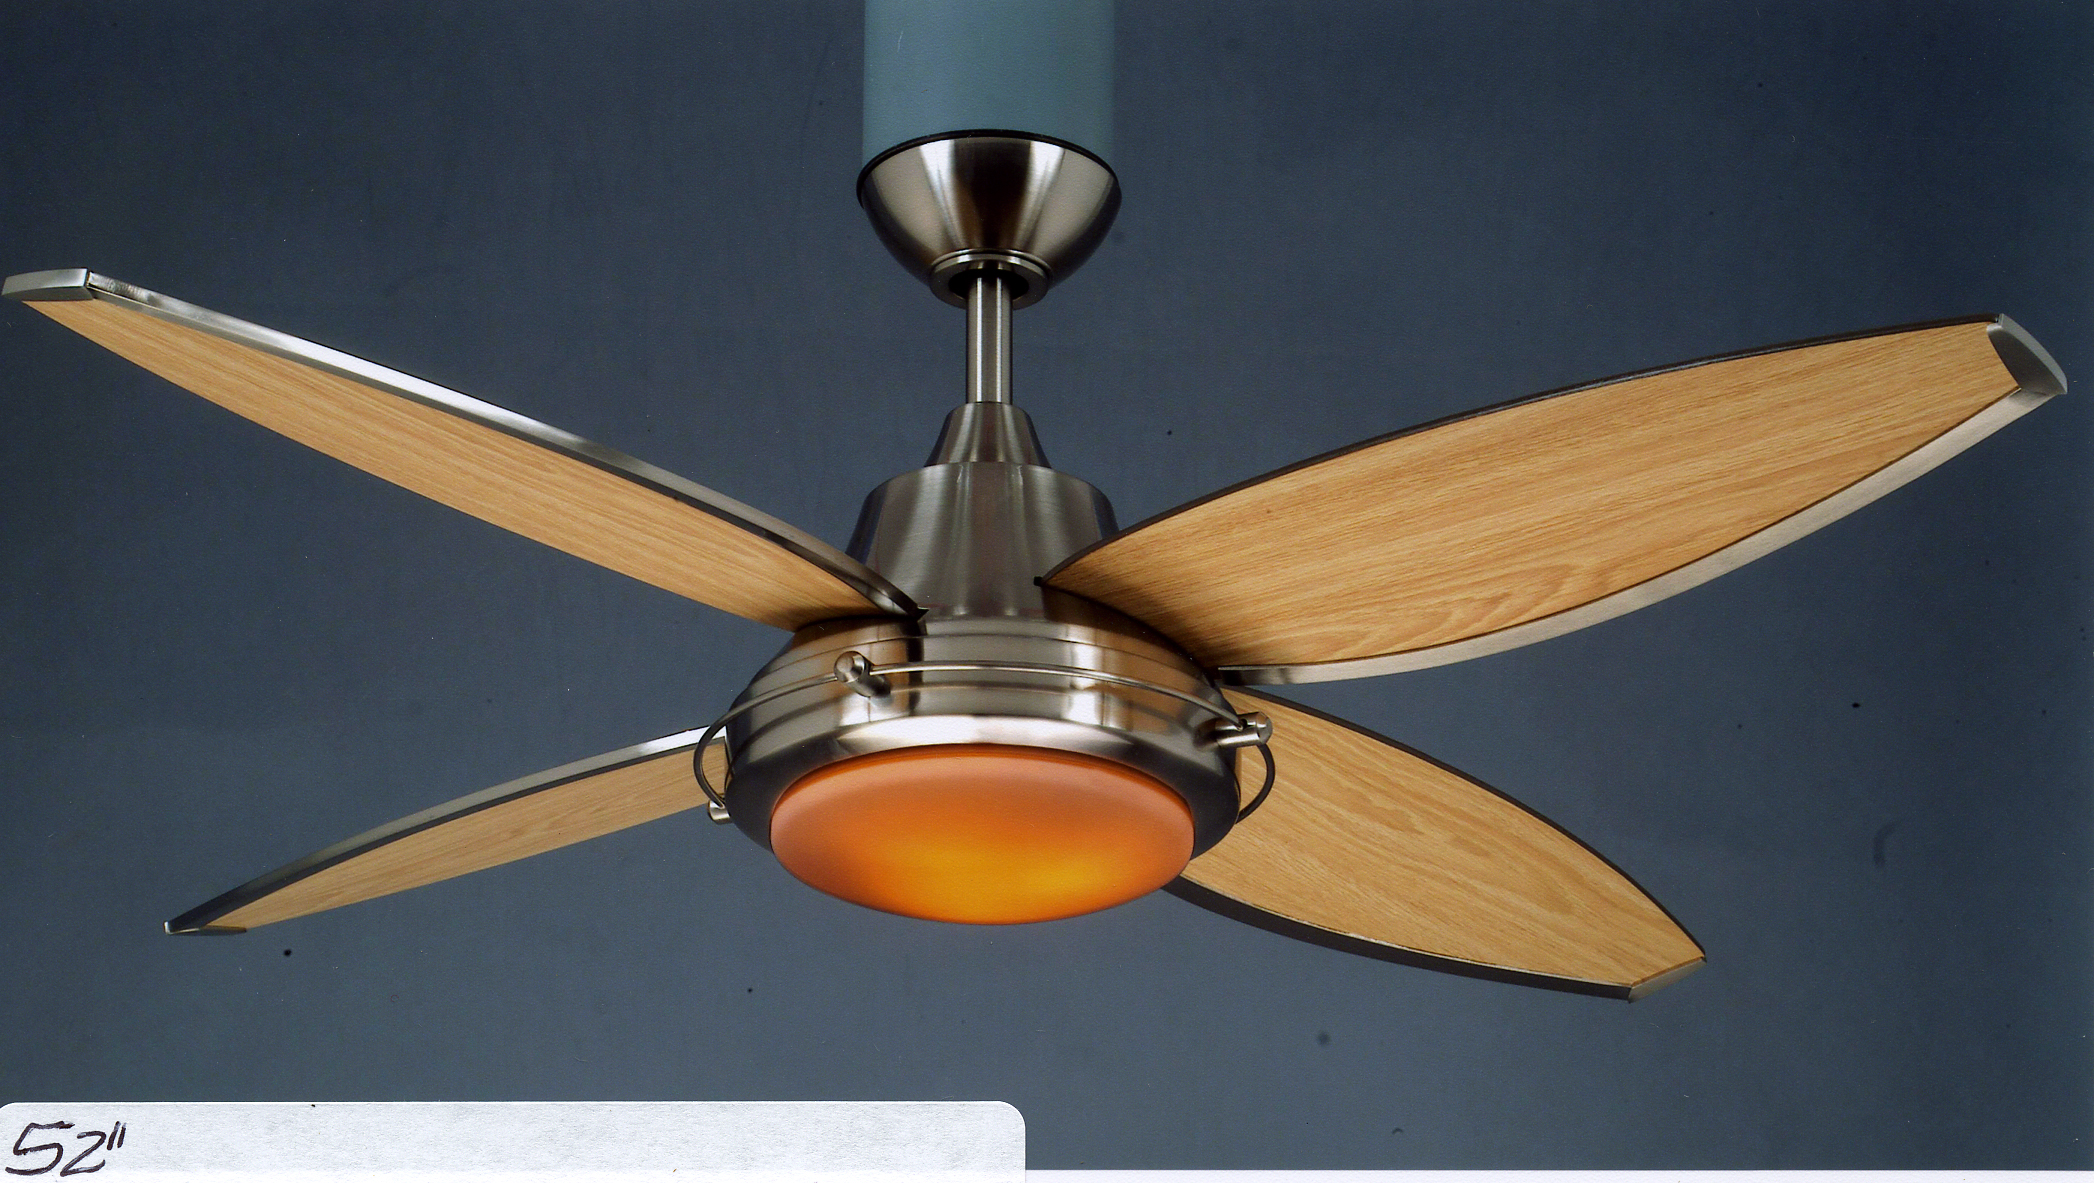 Marks project blog replacing a ceiling fan with a light fixture source httptal usavasnerromanoml aloadofball Images